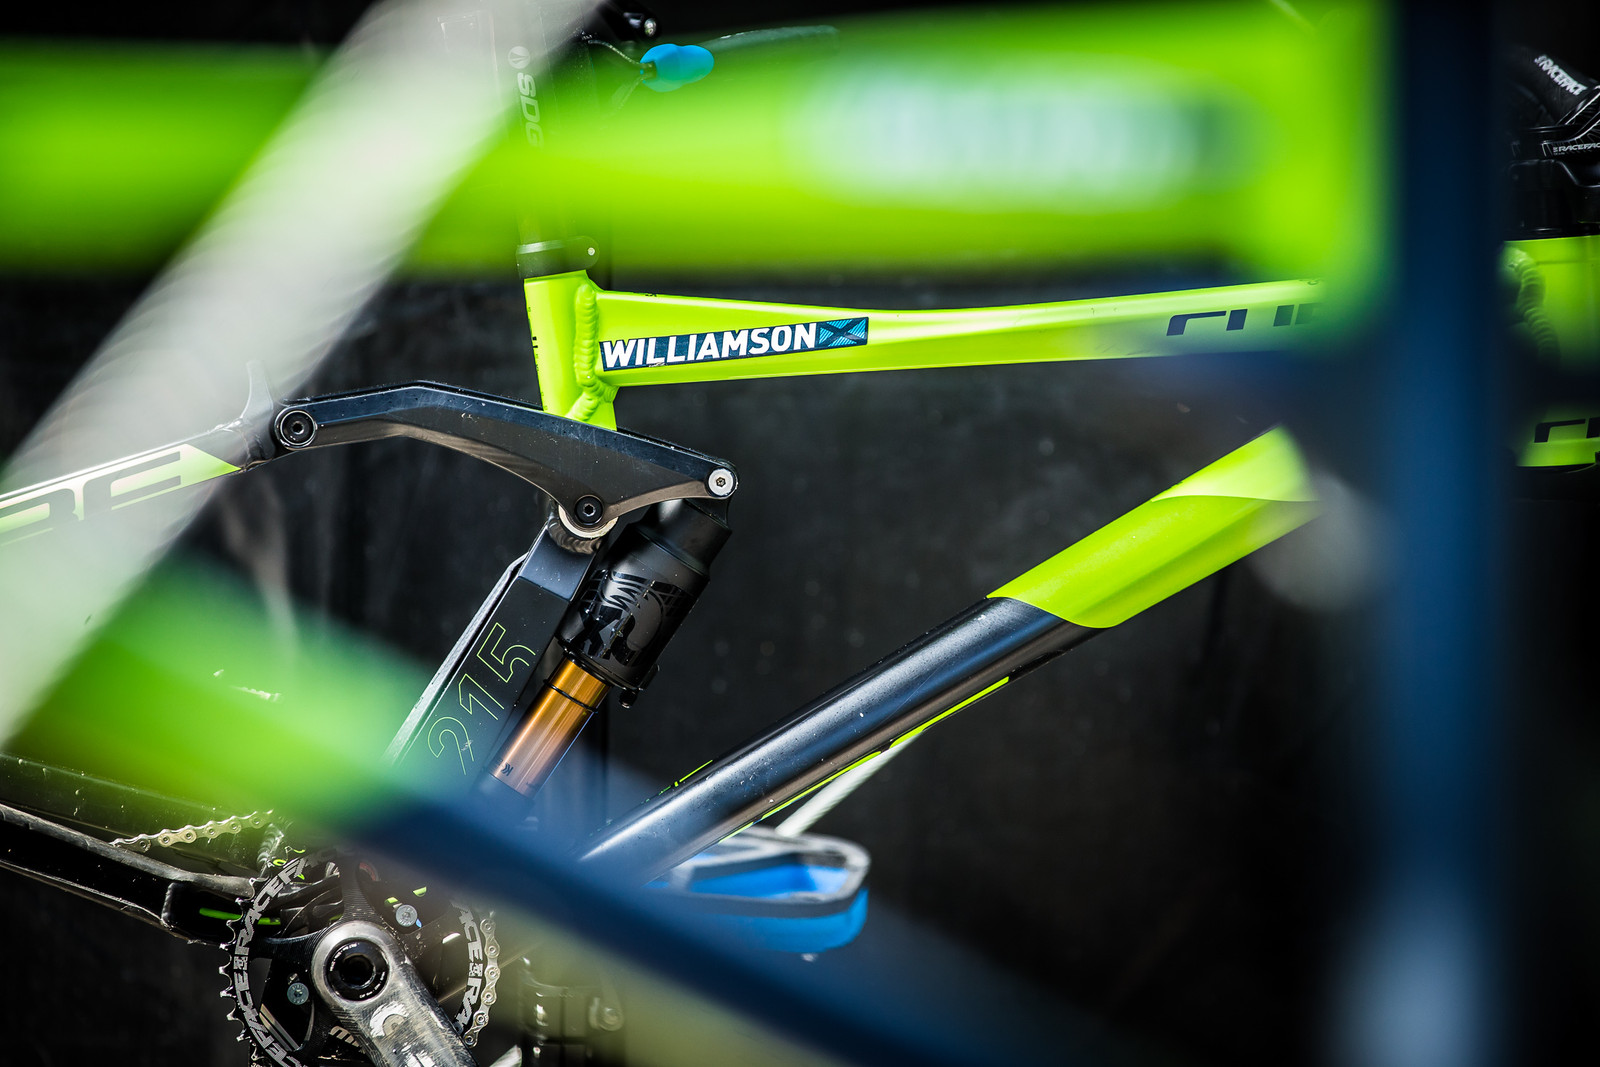 Greg Williamson's Cube - 2017 Leogang World Cup Pit Bits - Mountain Biking Pictures - Vital MTB